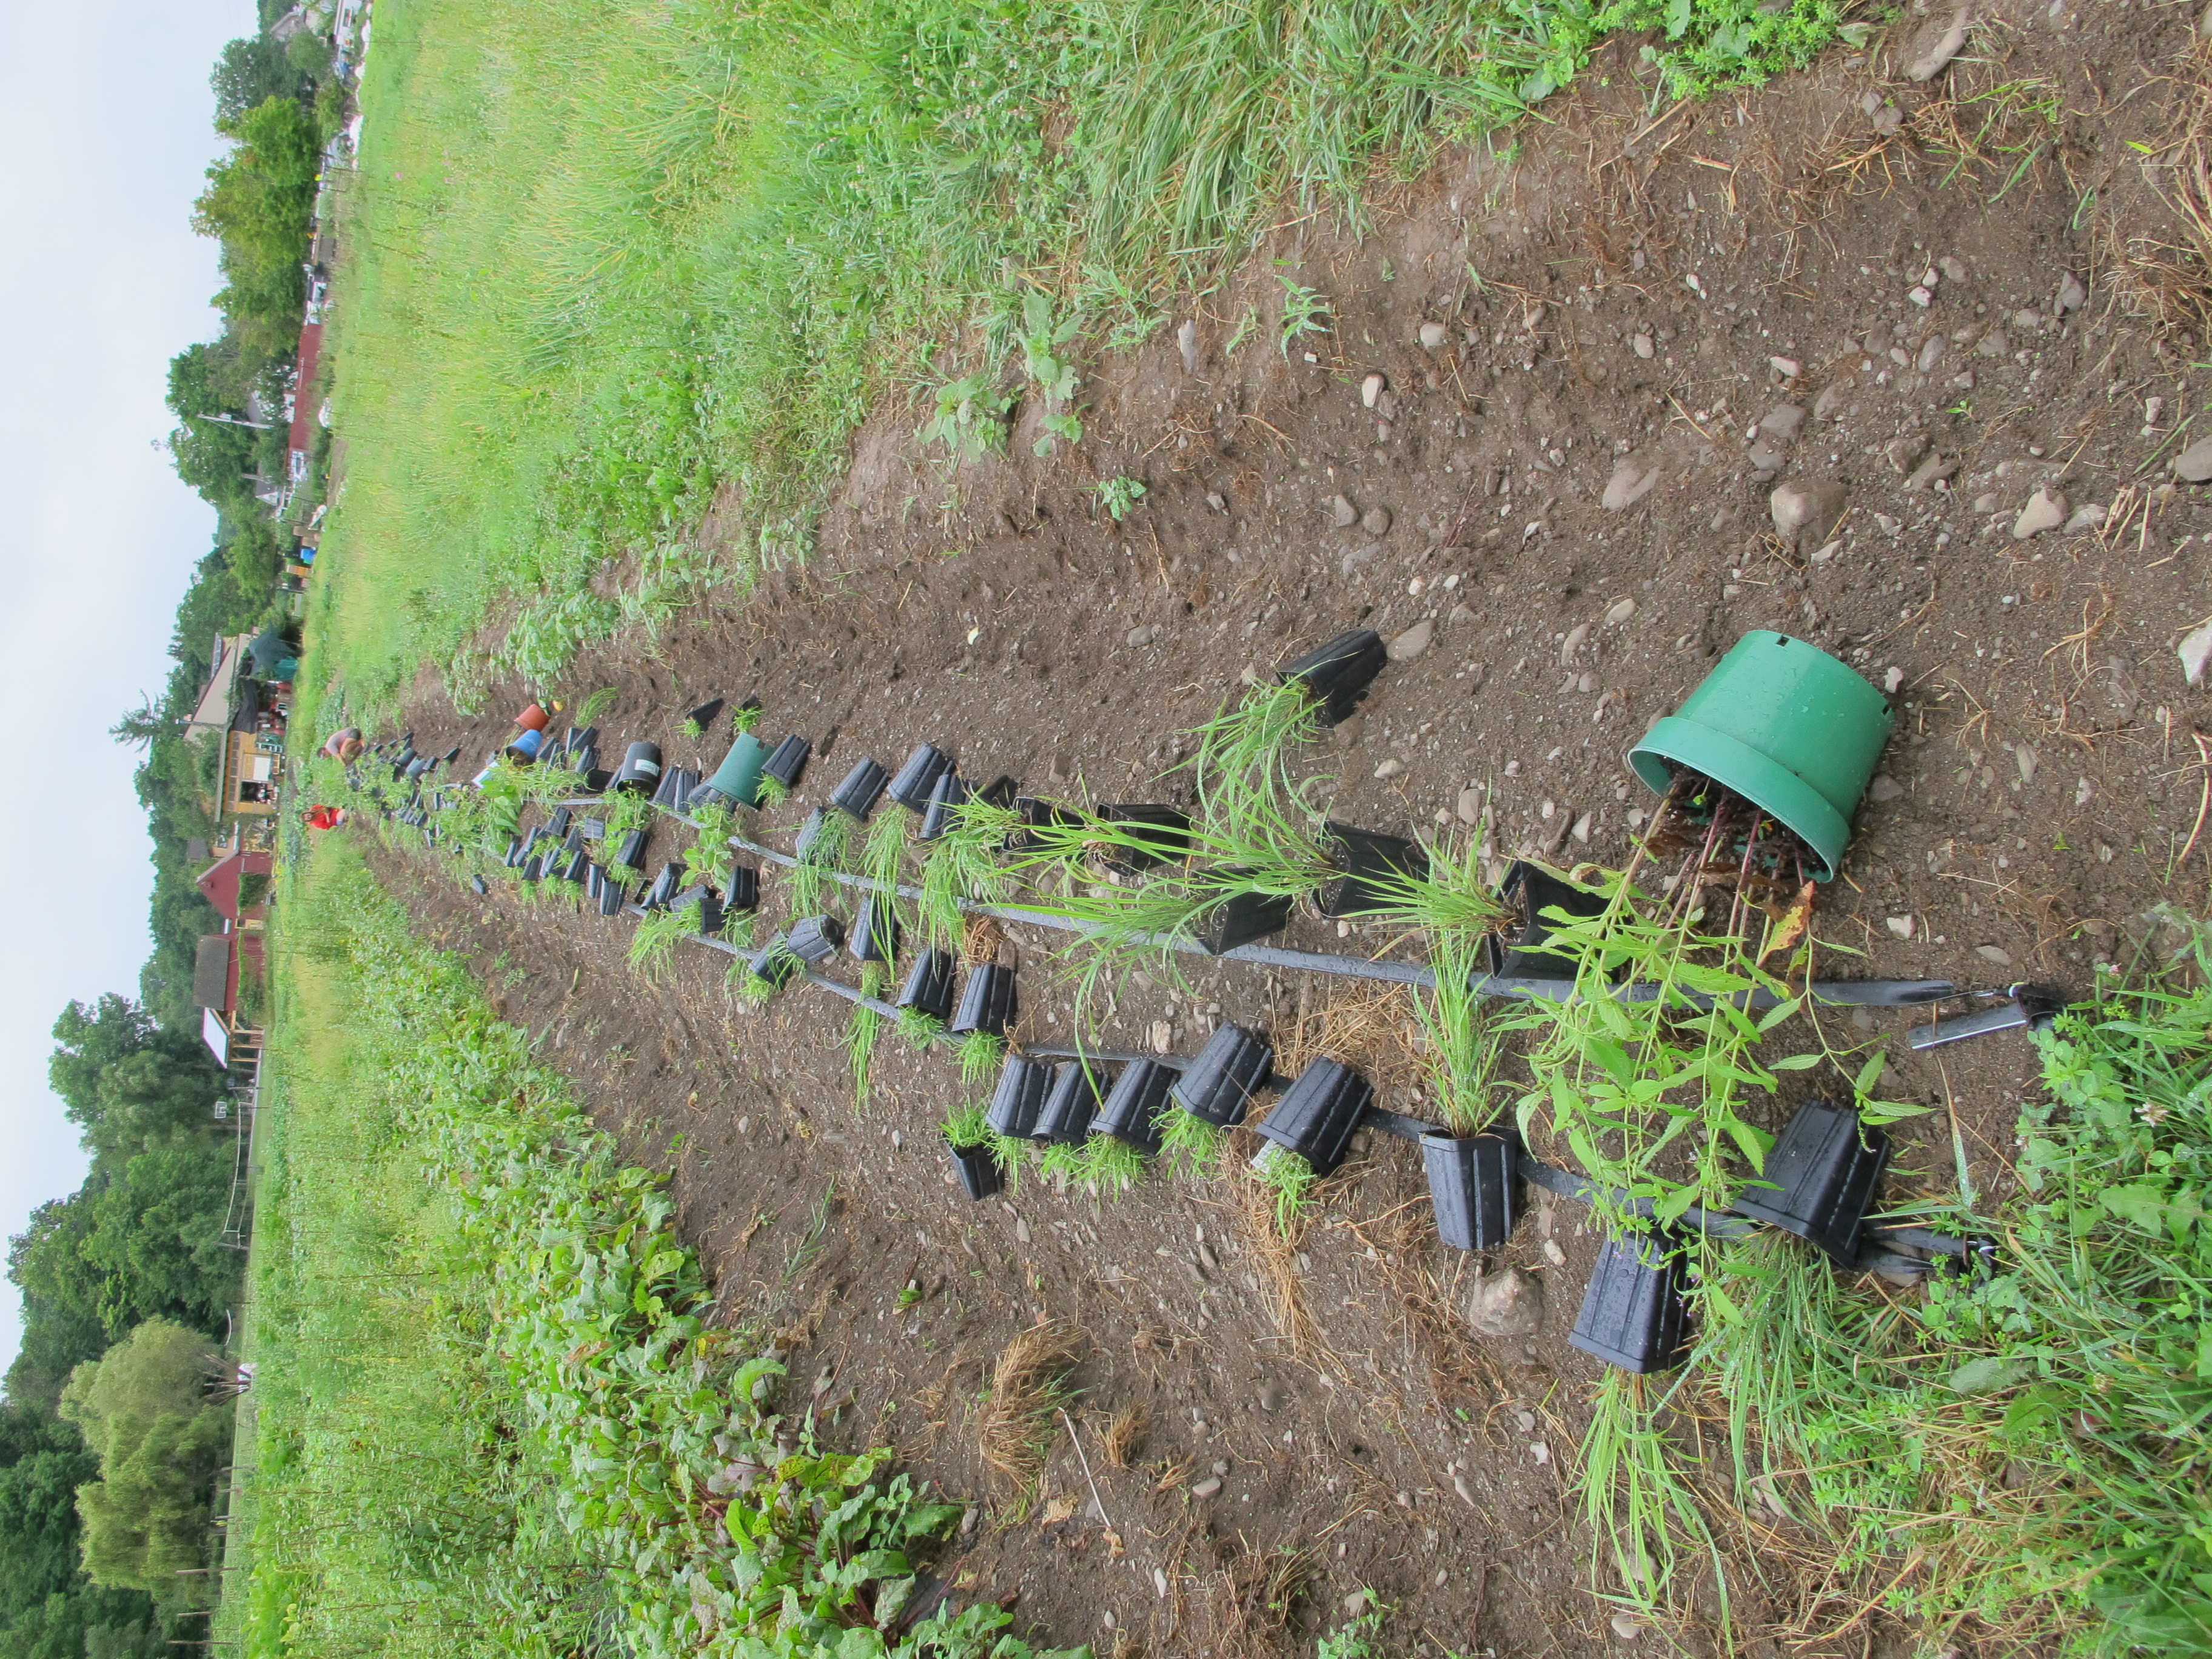 the beetle bank is long and runs parallel to the vegetable beds